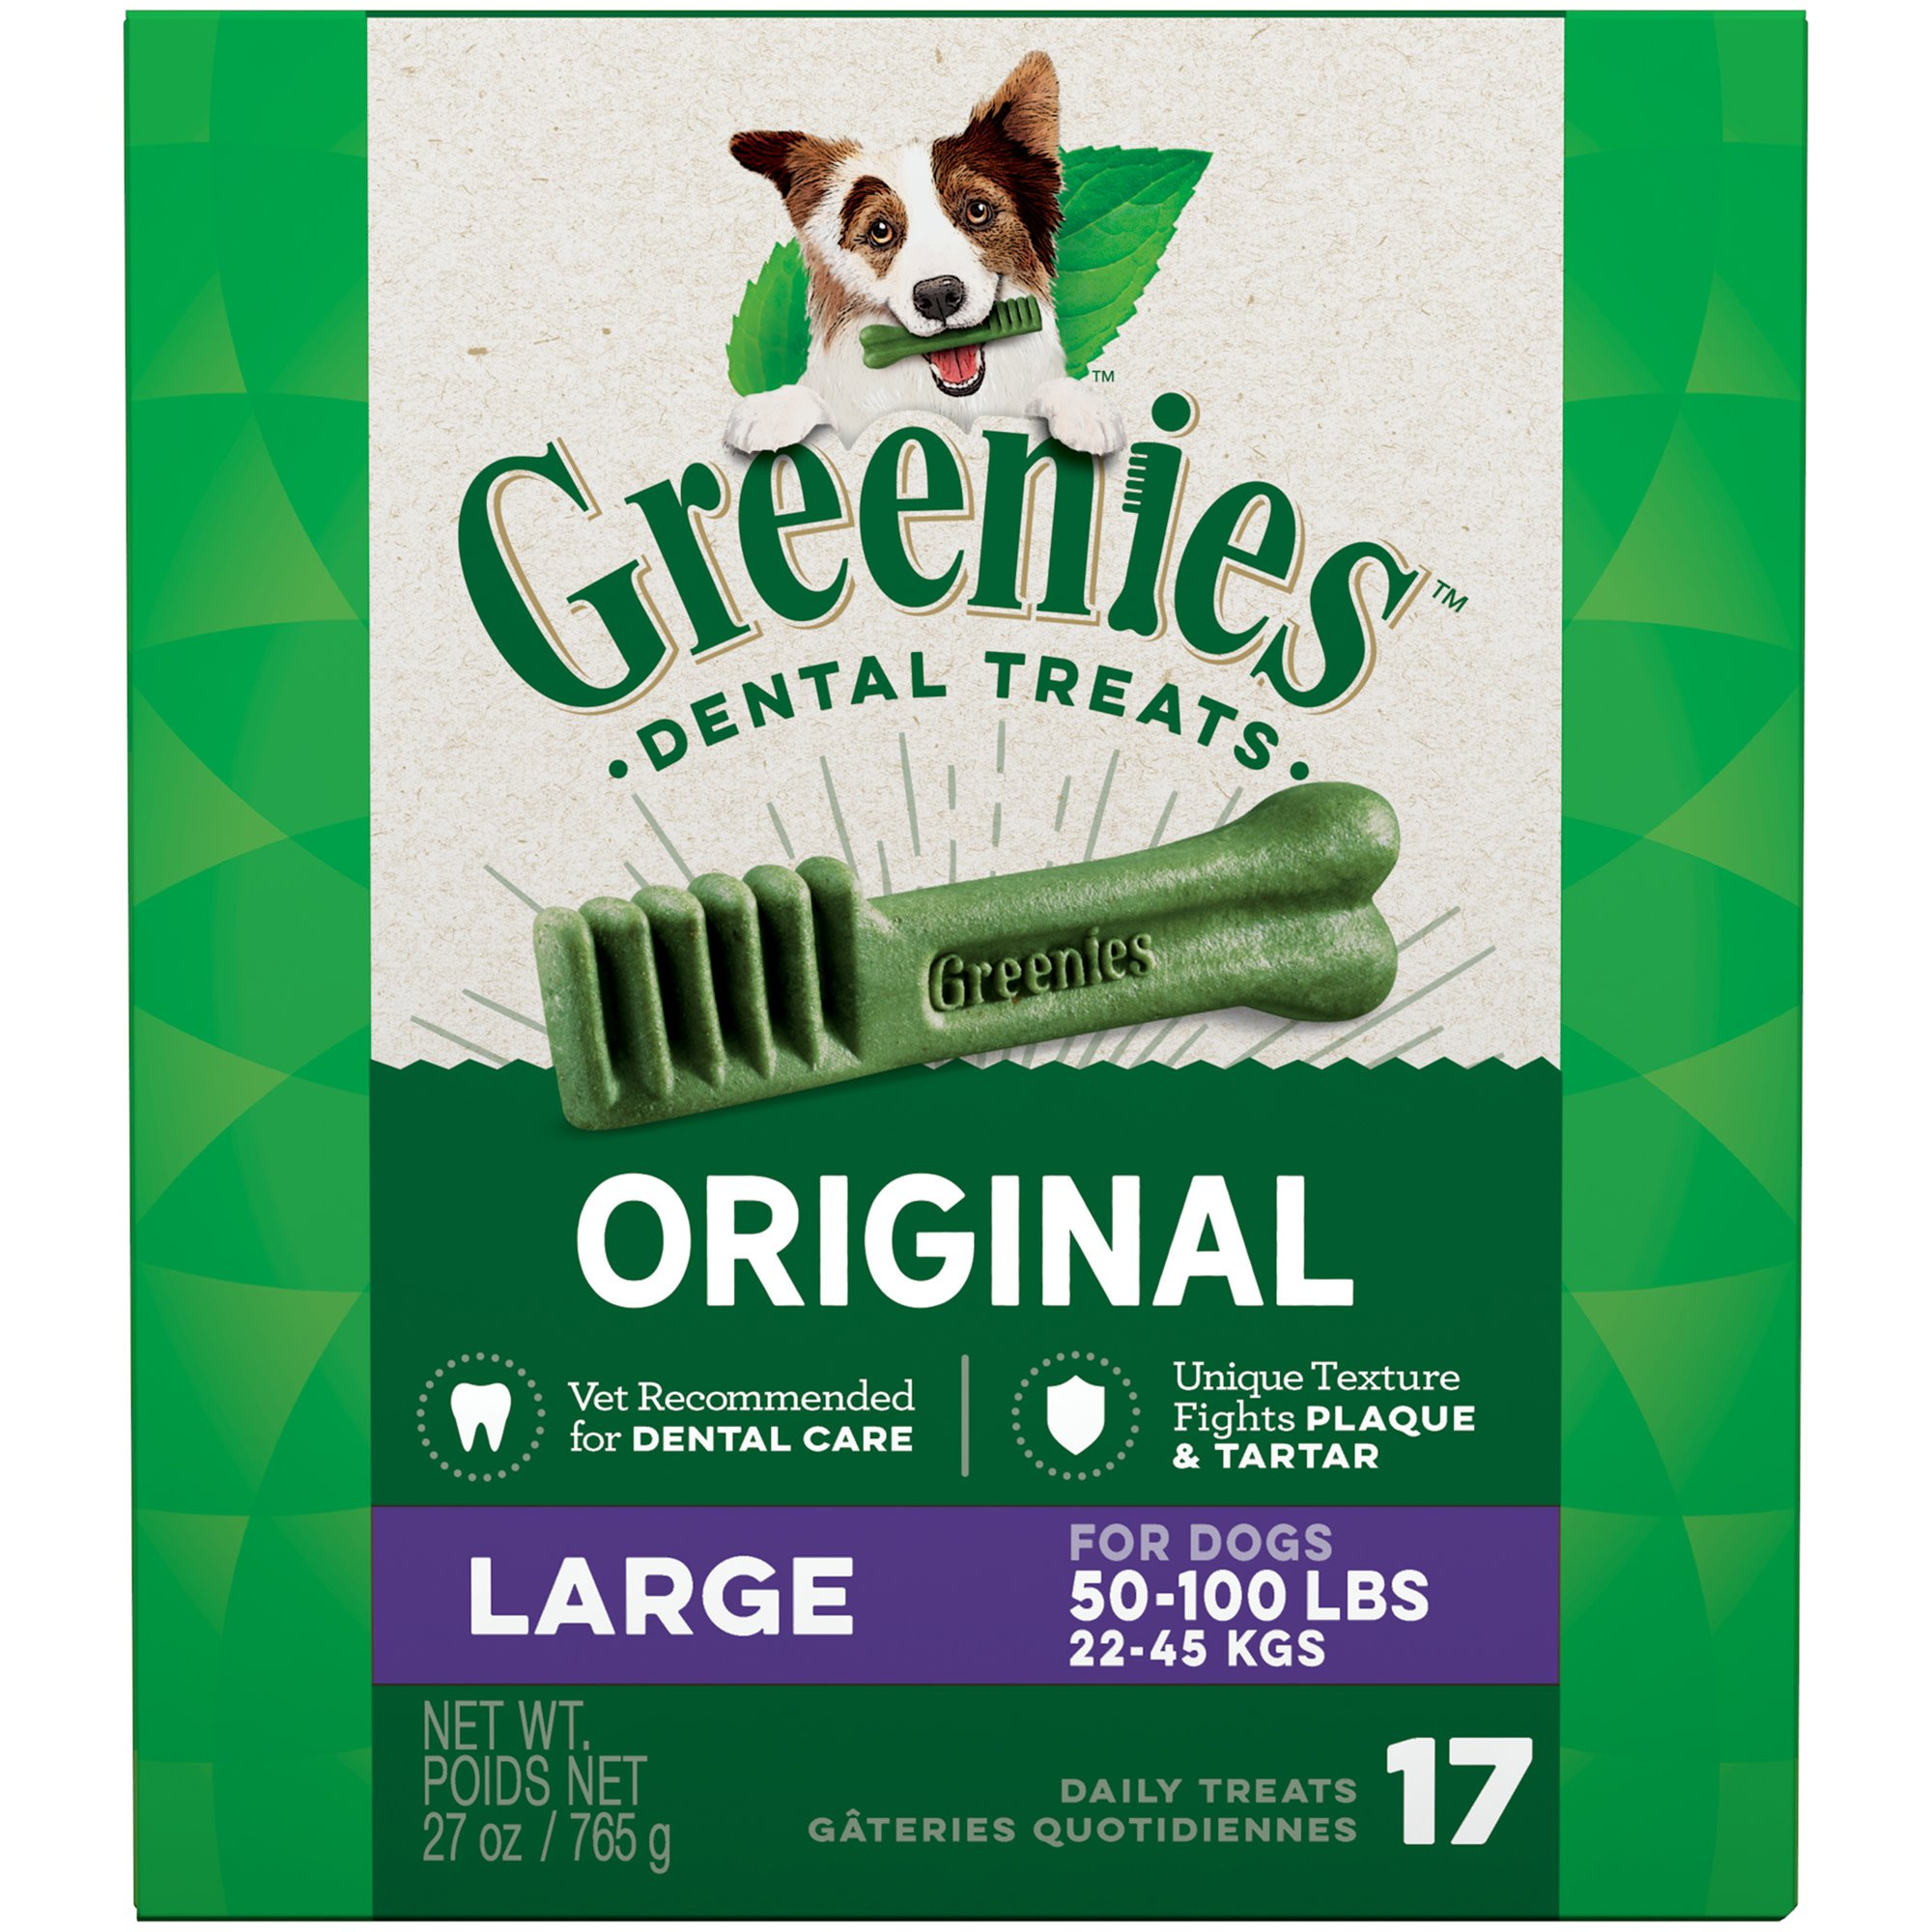 Greenies Original Large Dental Dog Treats, 17-count